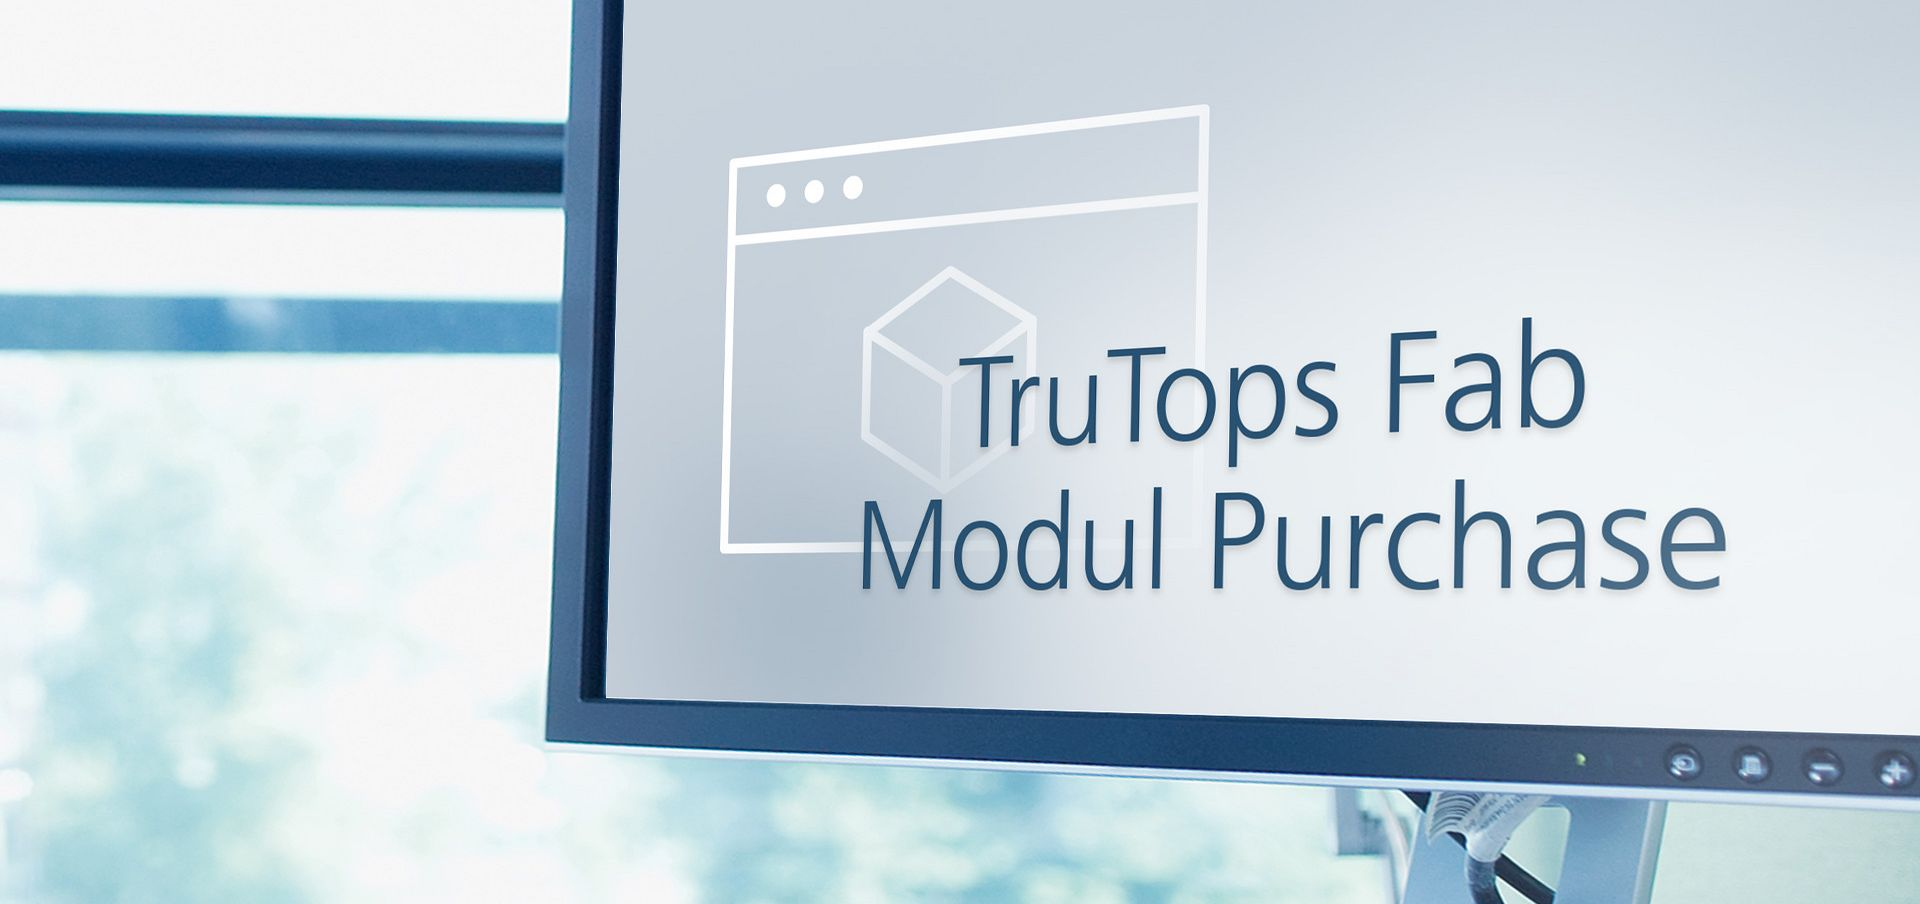 TruTops Fab Modul Purchase